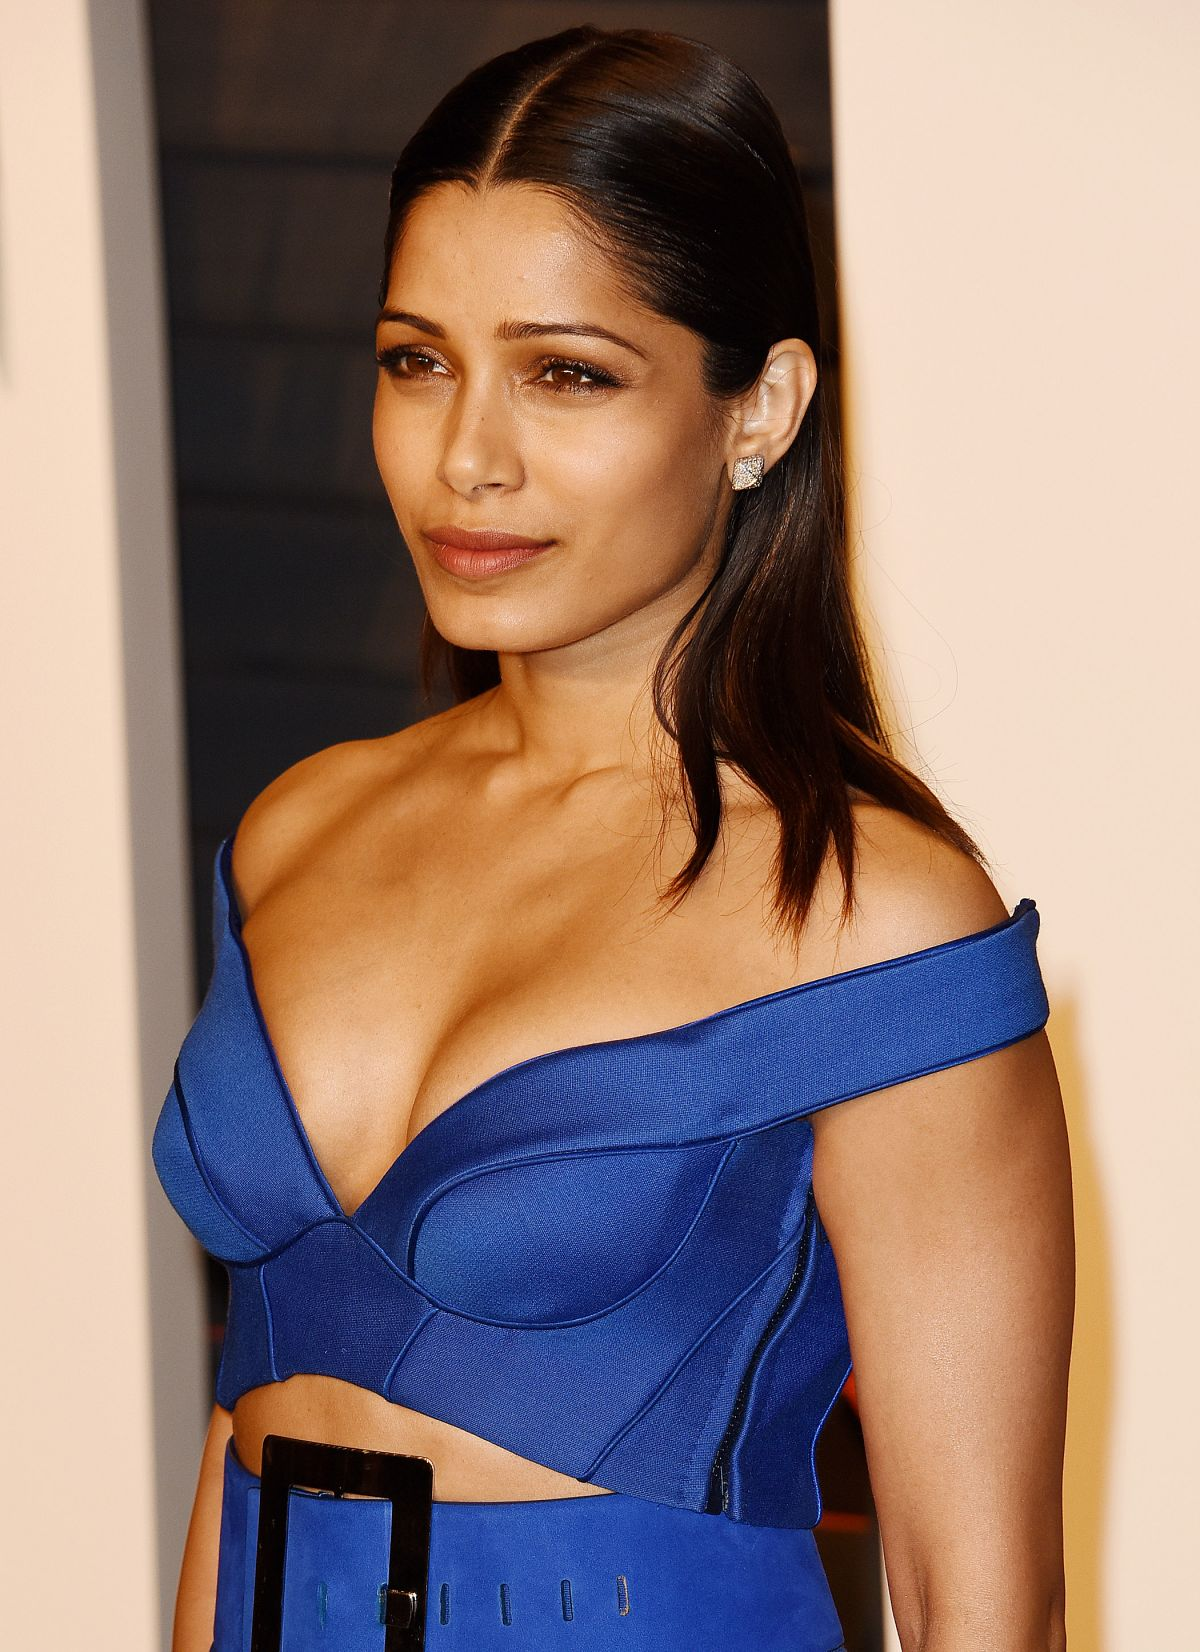 Freida Pinto At 2016 Vanity Fair Oscar Party Hosted by Graydon Carter - Celebzz - Celebzz Freida Pinto